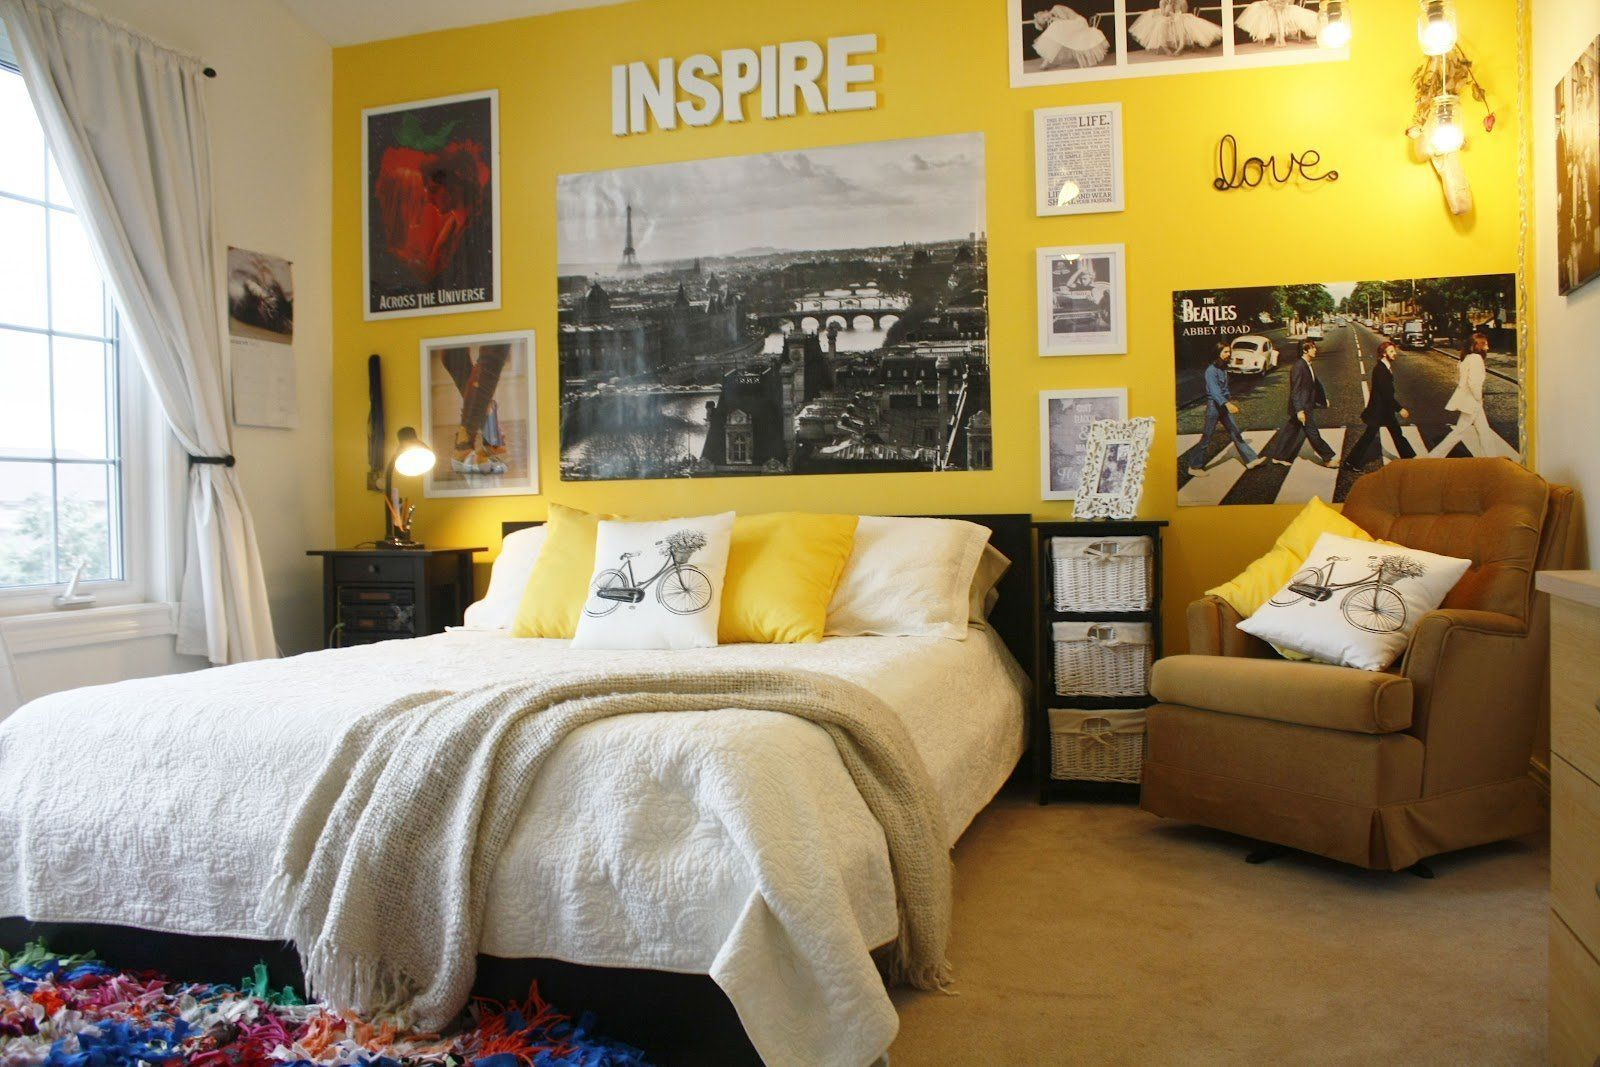 20 Of The Coolest Teen Room Ideas | Girl Things | Pinterest ...